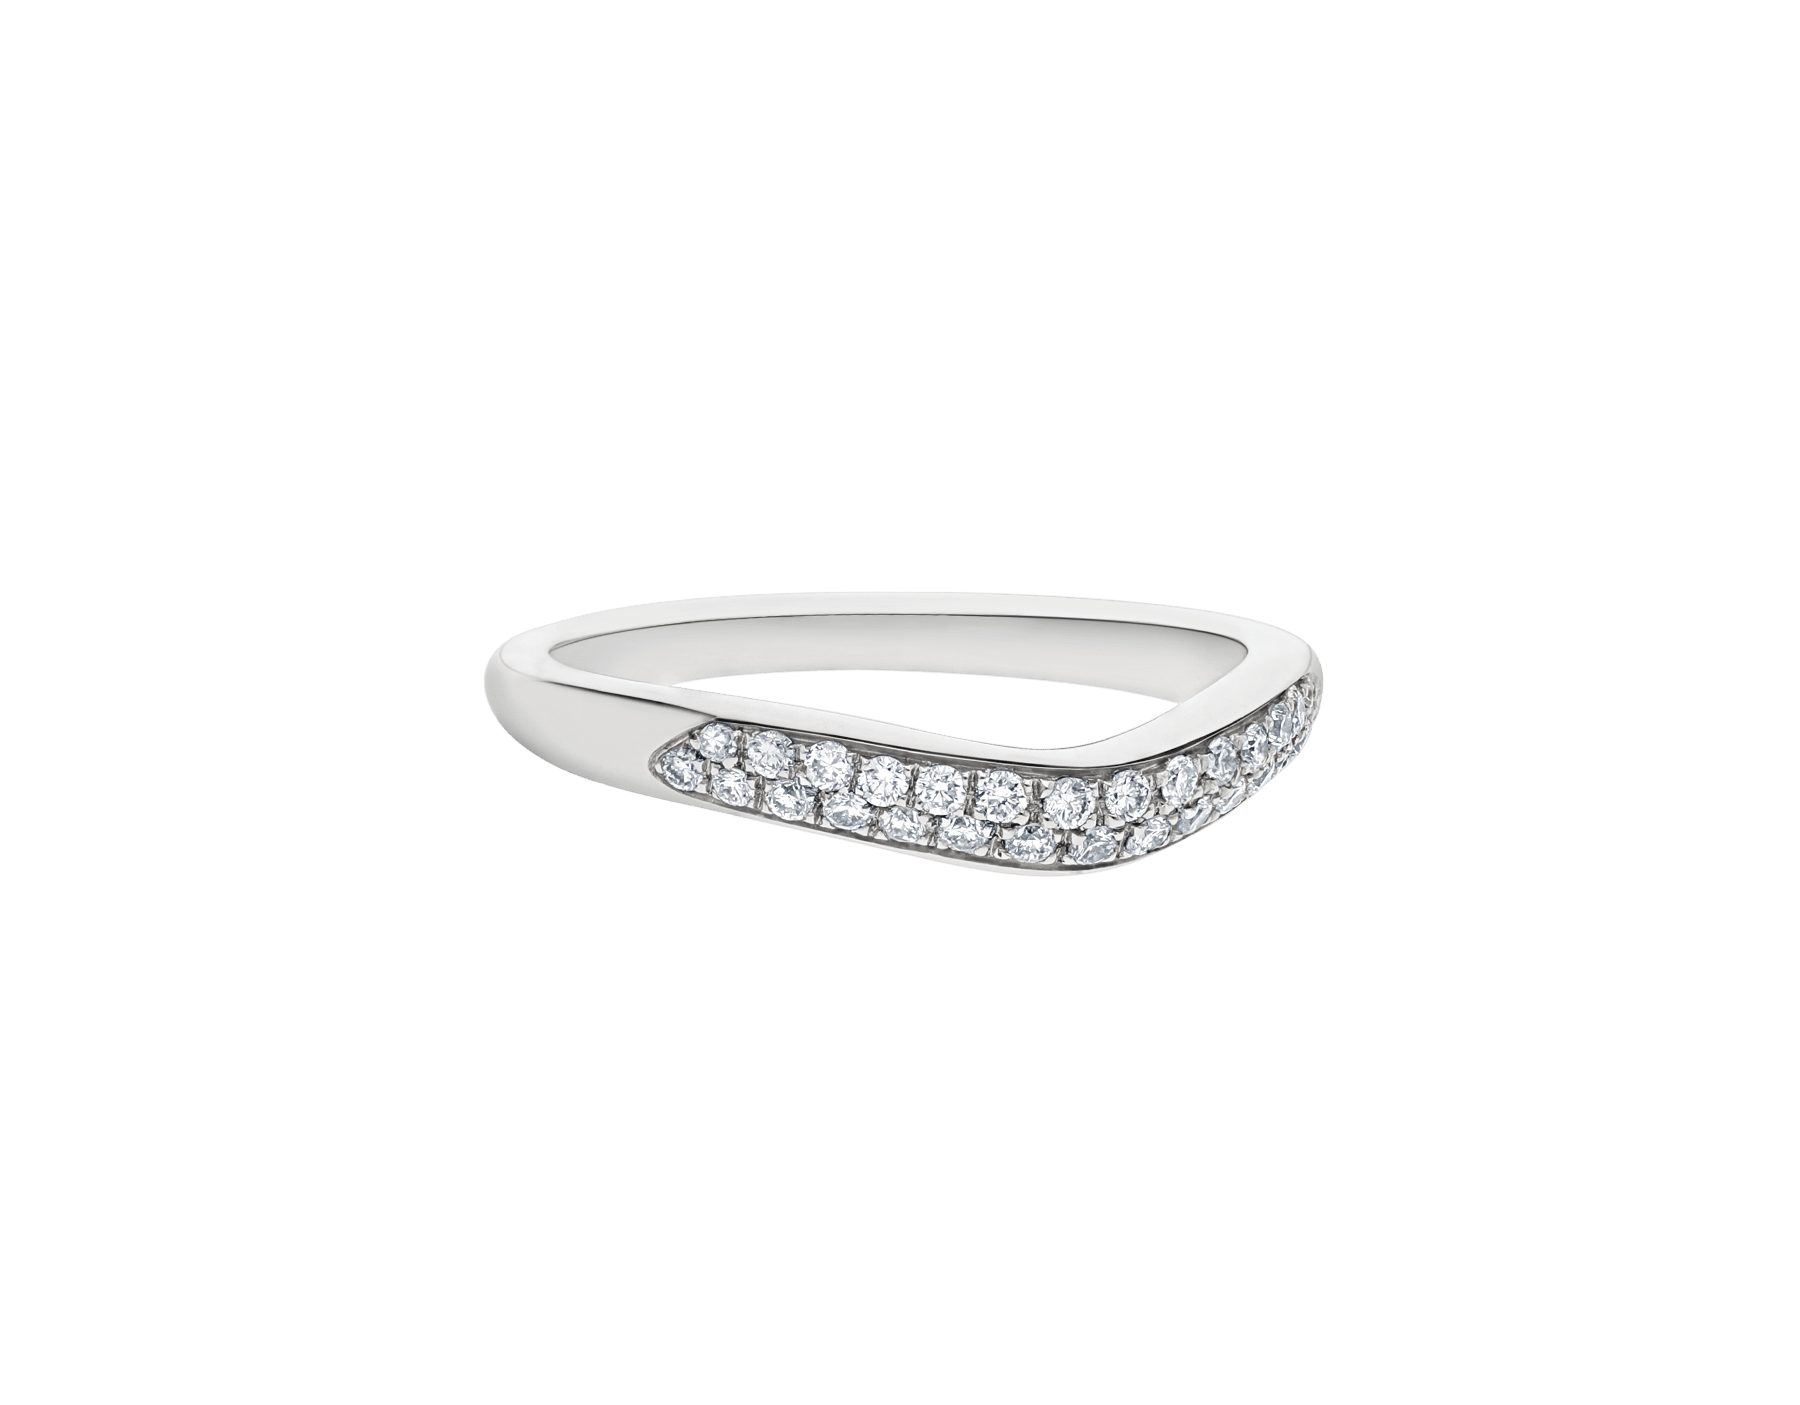 Corona platinum wedding band set with pavé diamonds AN856079 image 3